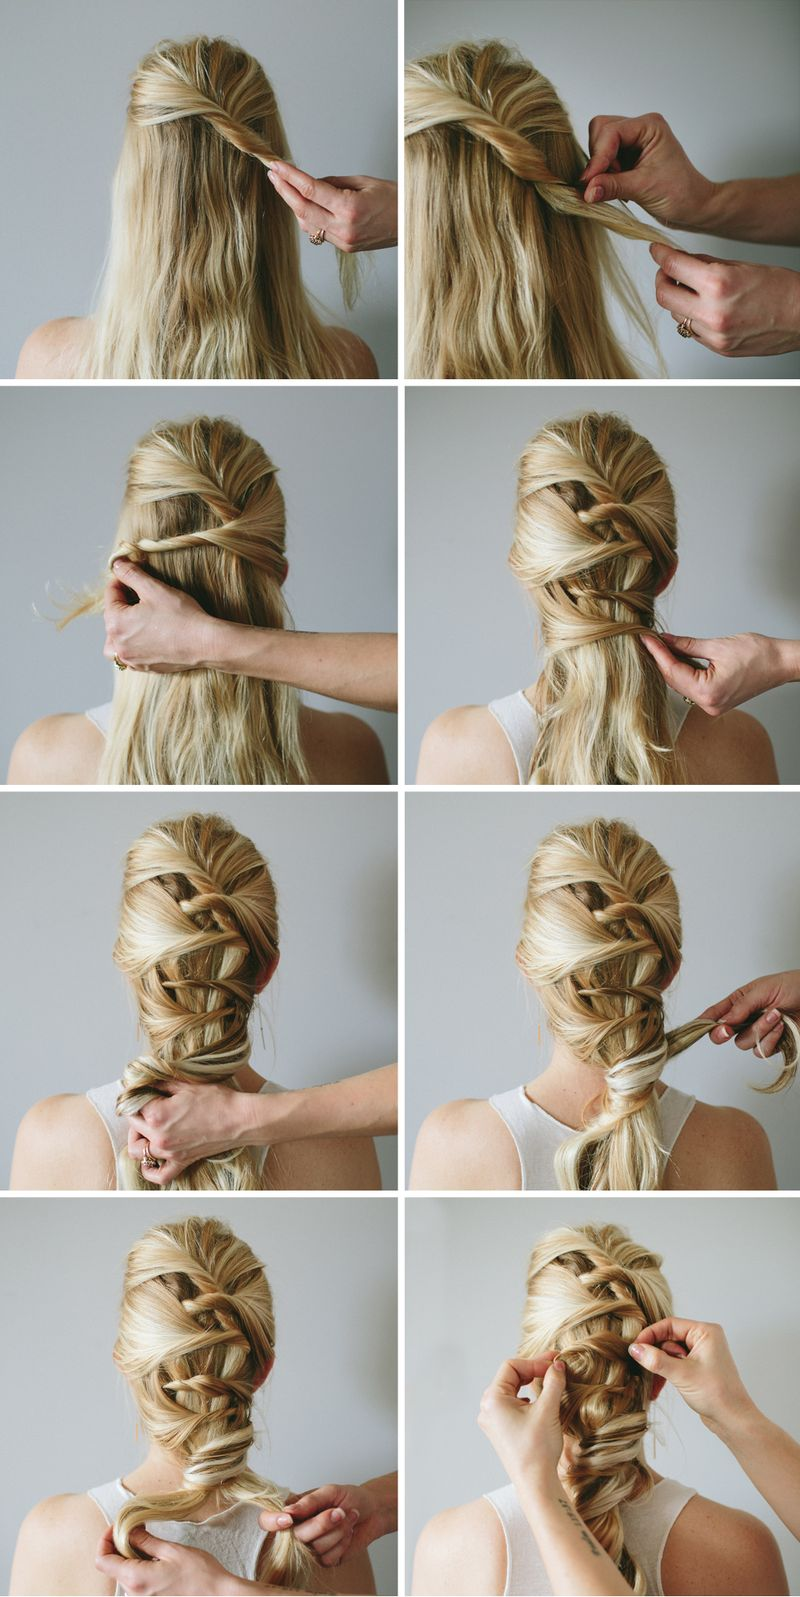 Romantic twist braid hair tutorial